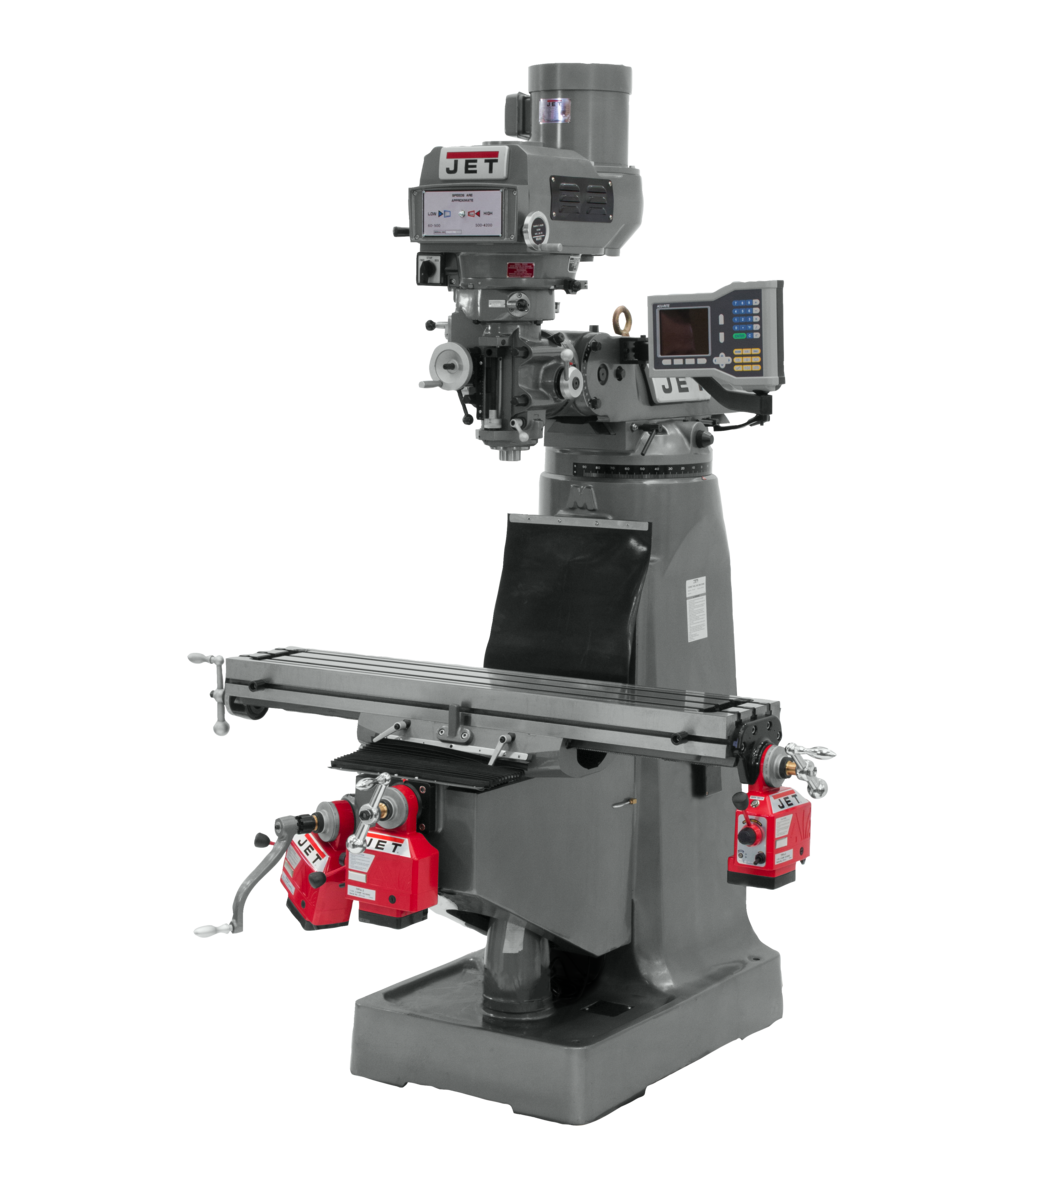 JTM-4VS-1 Mill With 3-Axis ACU-RITE 203 DRO (Knee) With X, Y and Z-Axis Powerfeeds